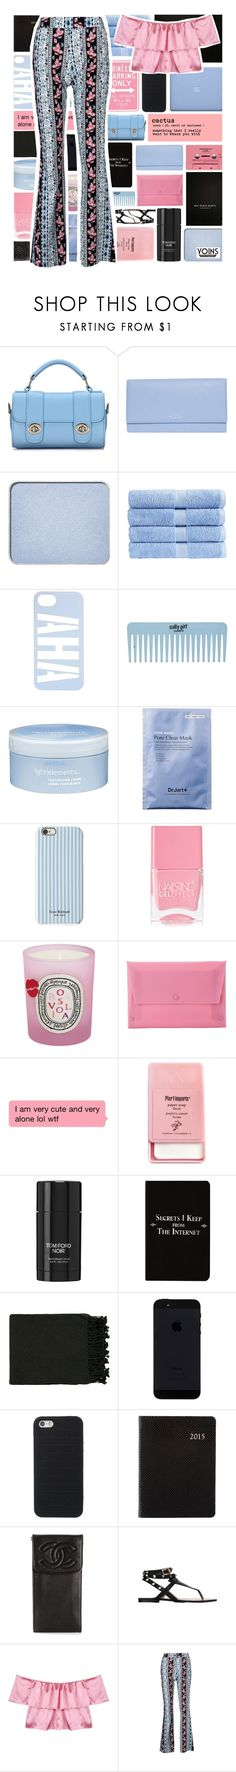 """YOINS"" by xgracieeee ❤ liked on Polyvore featuring Smythson, shu uemura, Christy, Aveda, Isaac Mizrahi, Nails Inc., Diptyque, MANGO, Pier 1 Imports and Tom Ford"